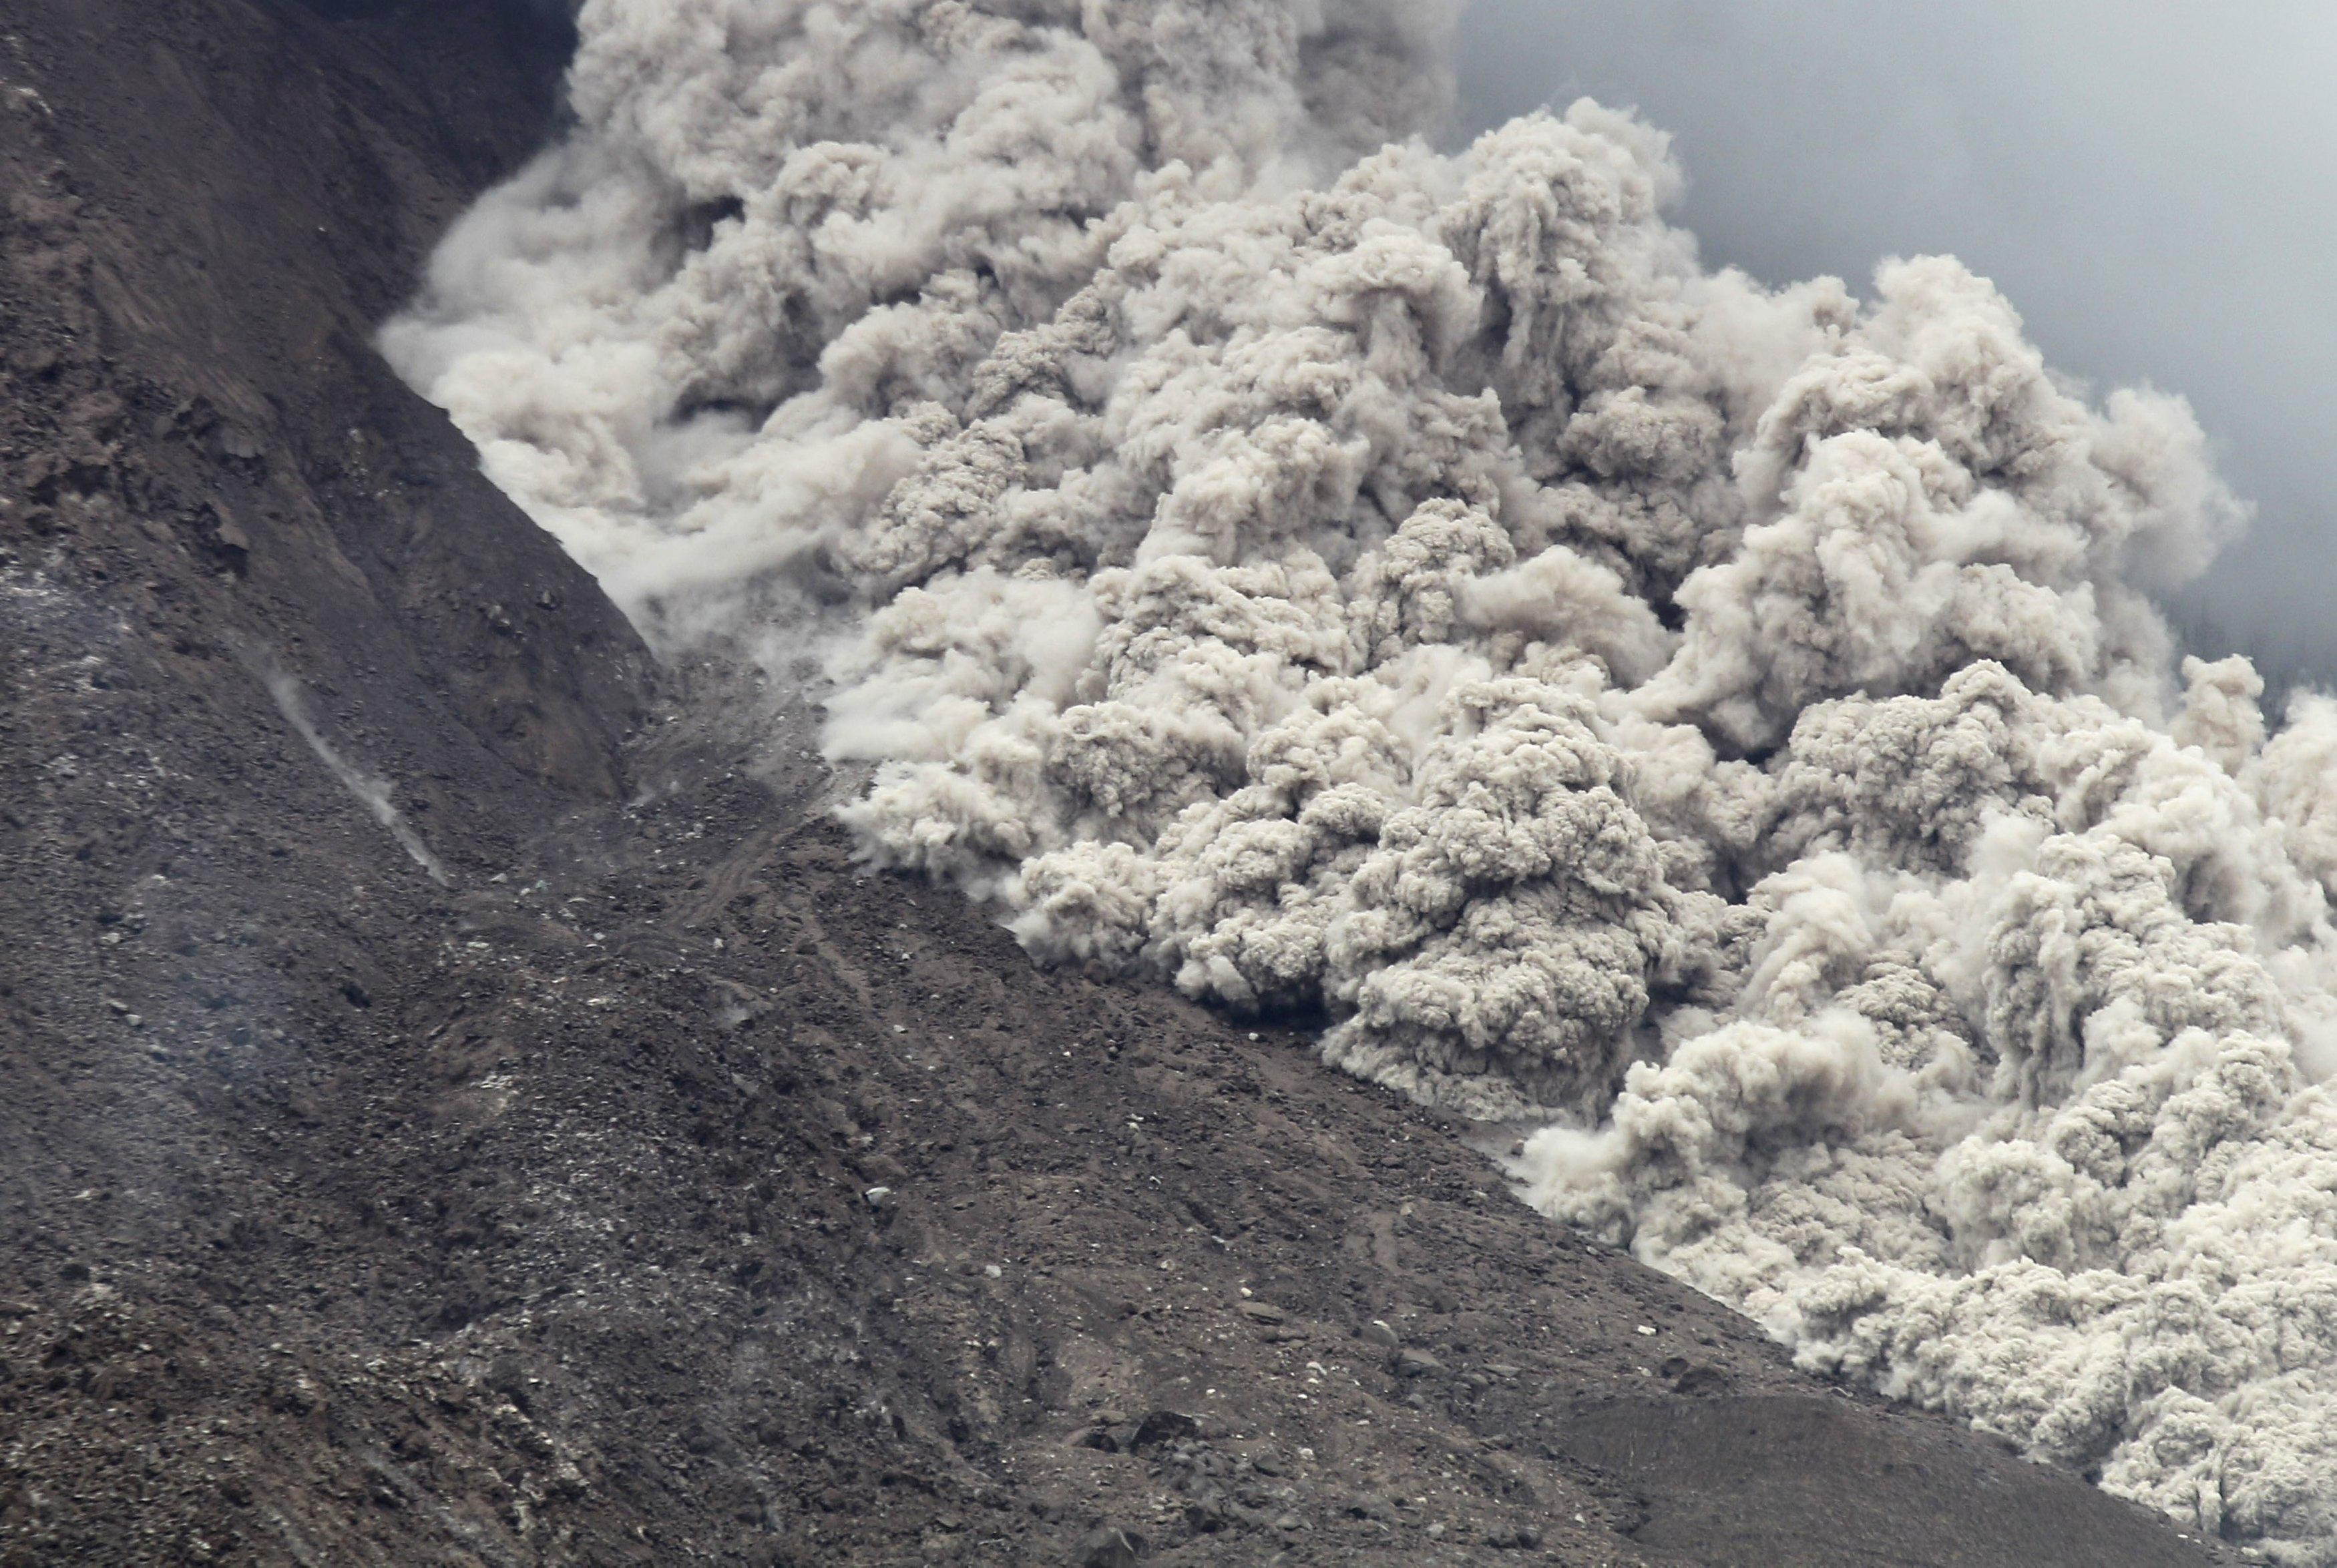 Mt. Sinabung spews massive smoke-and-ash column